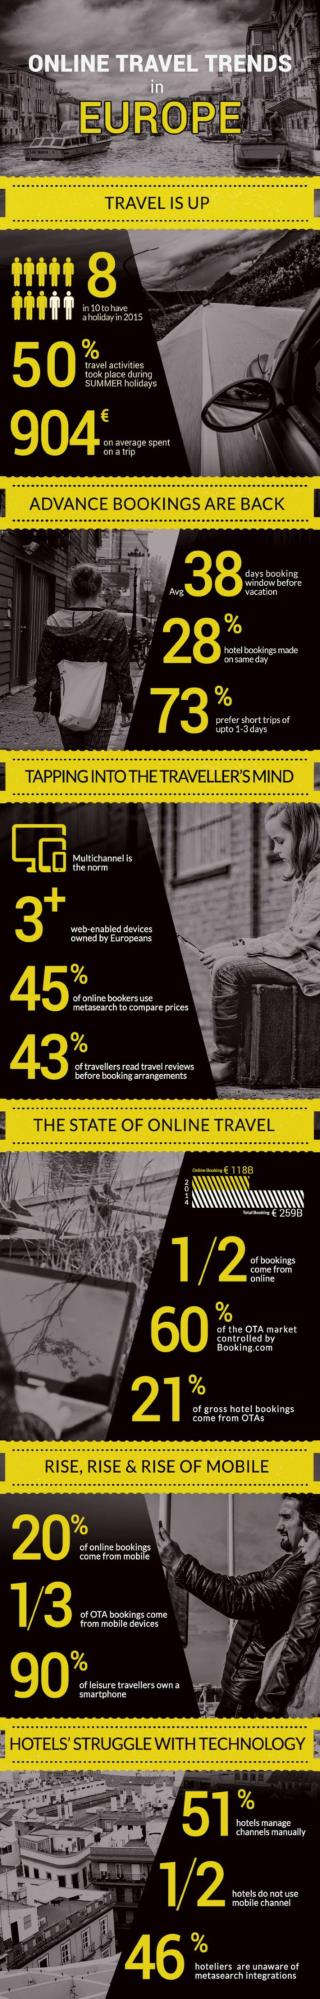 Online Travel Trends in Europe 2015